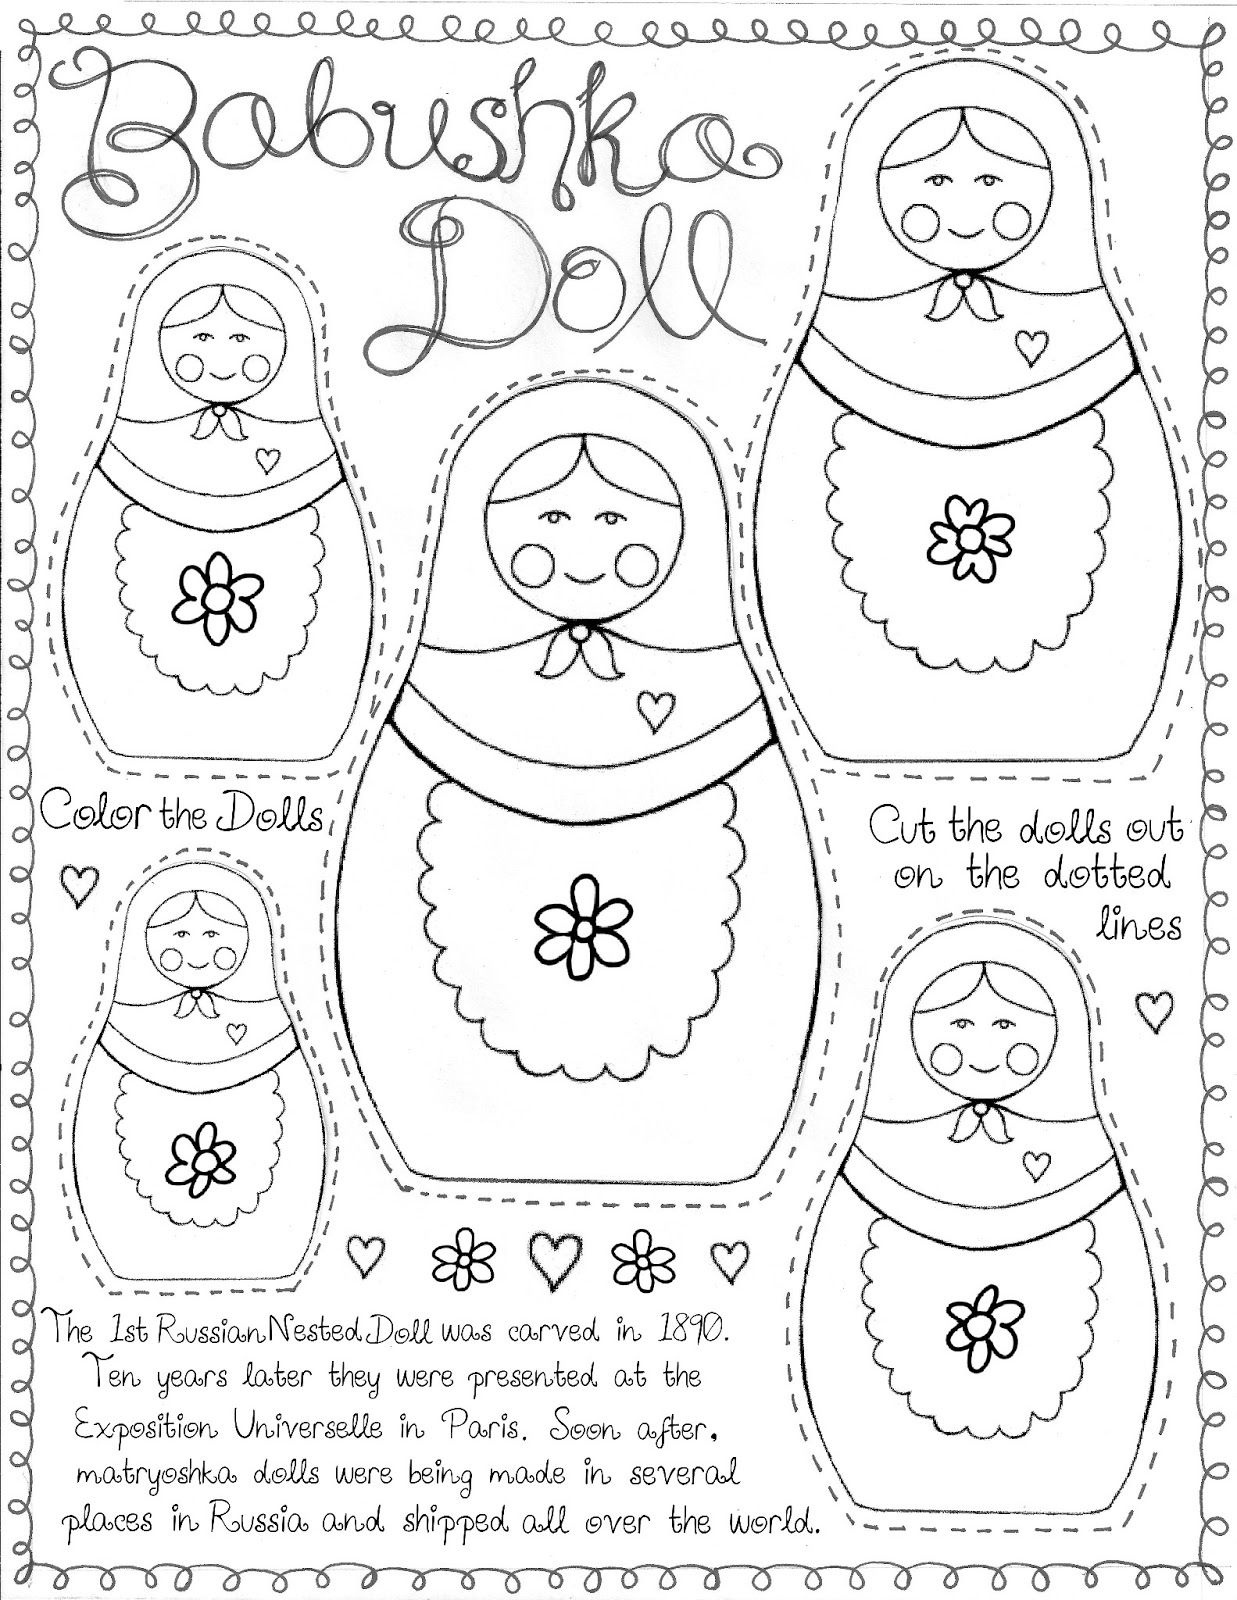 """Matryoshka Doll"""" Printable For """"around The World"""" Culture Study - Free Printable Paper Dolls From Around The World"""